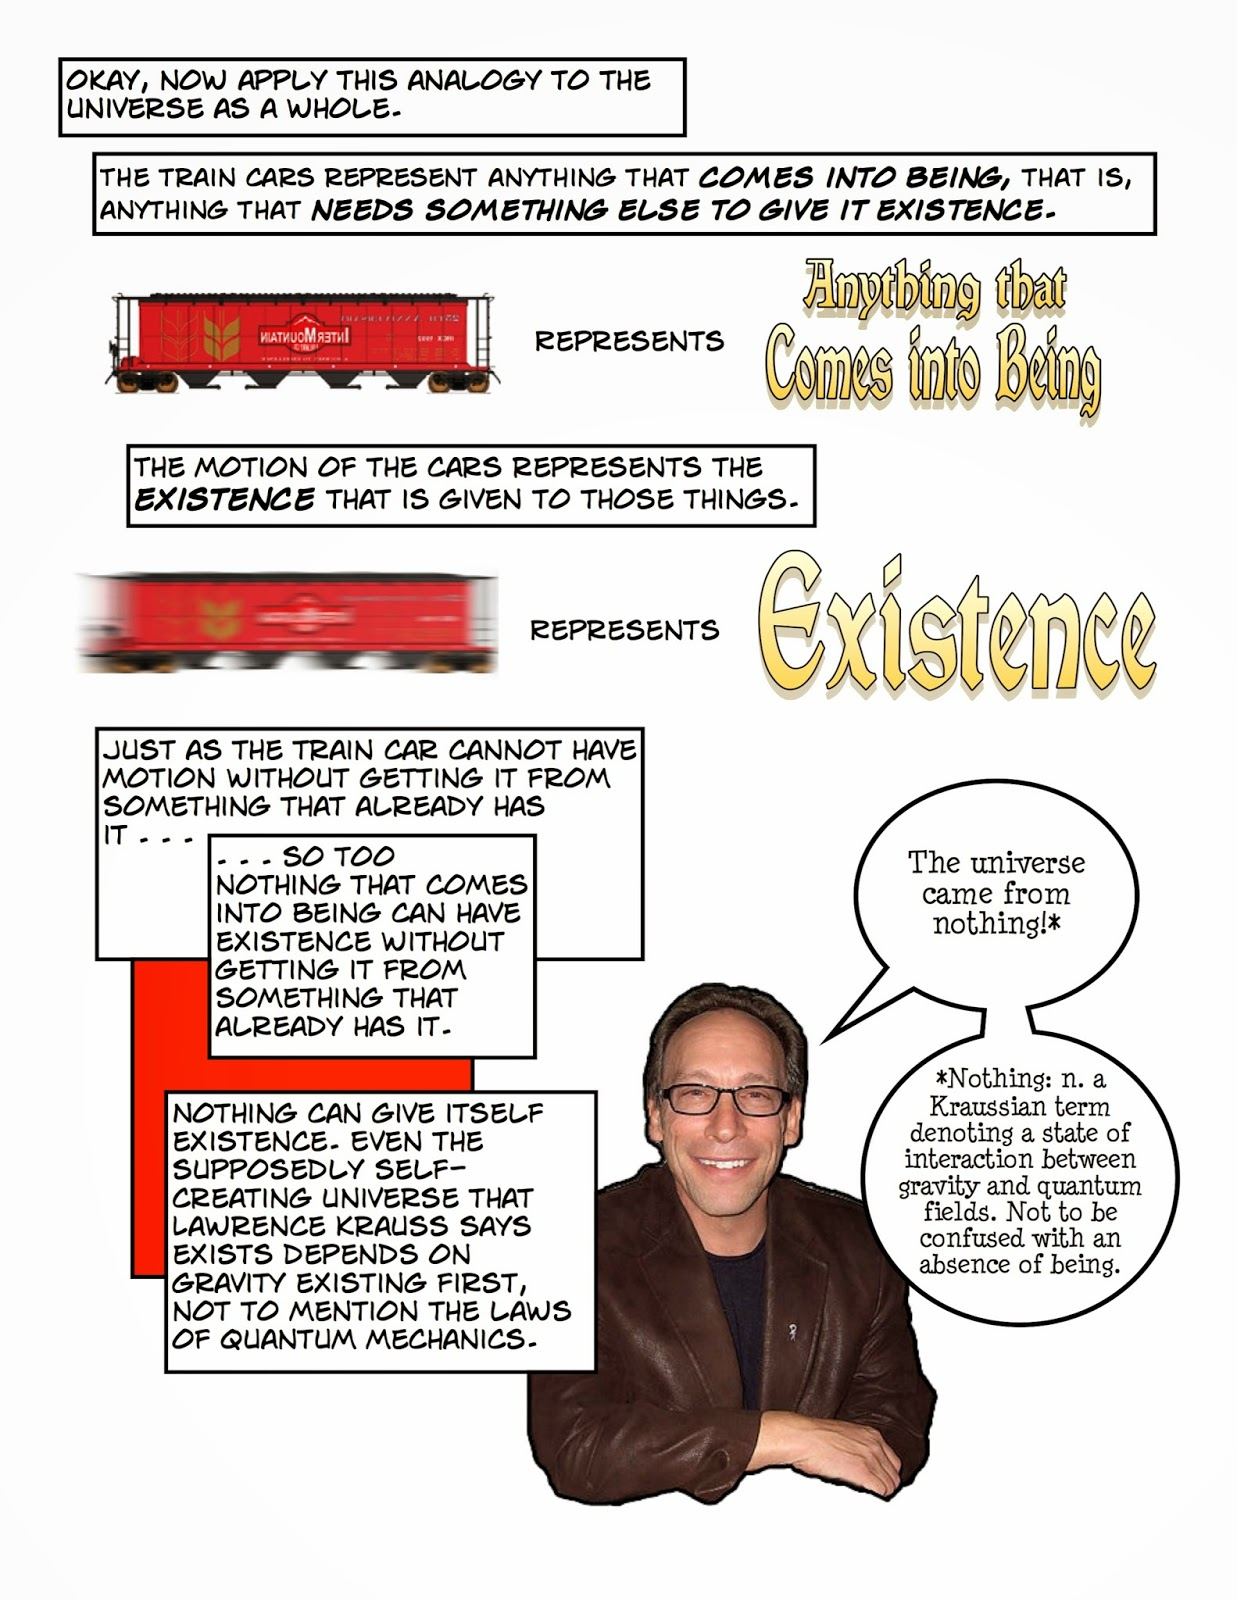 clarkes cosmological argument The strengths and weaknesses of the cosmological argument for the existence of god the cosmological argument seeks to prove the existence of god by looking at the universe it is an a posteriori proof based on experience and the observation of the world not logic so the outcome is probable or possible not definite.